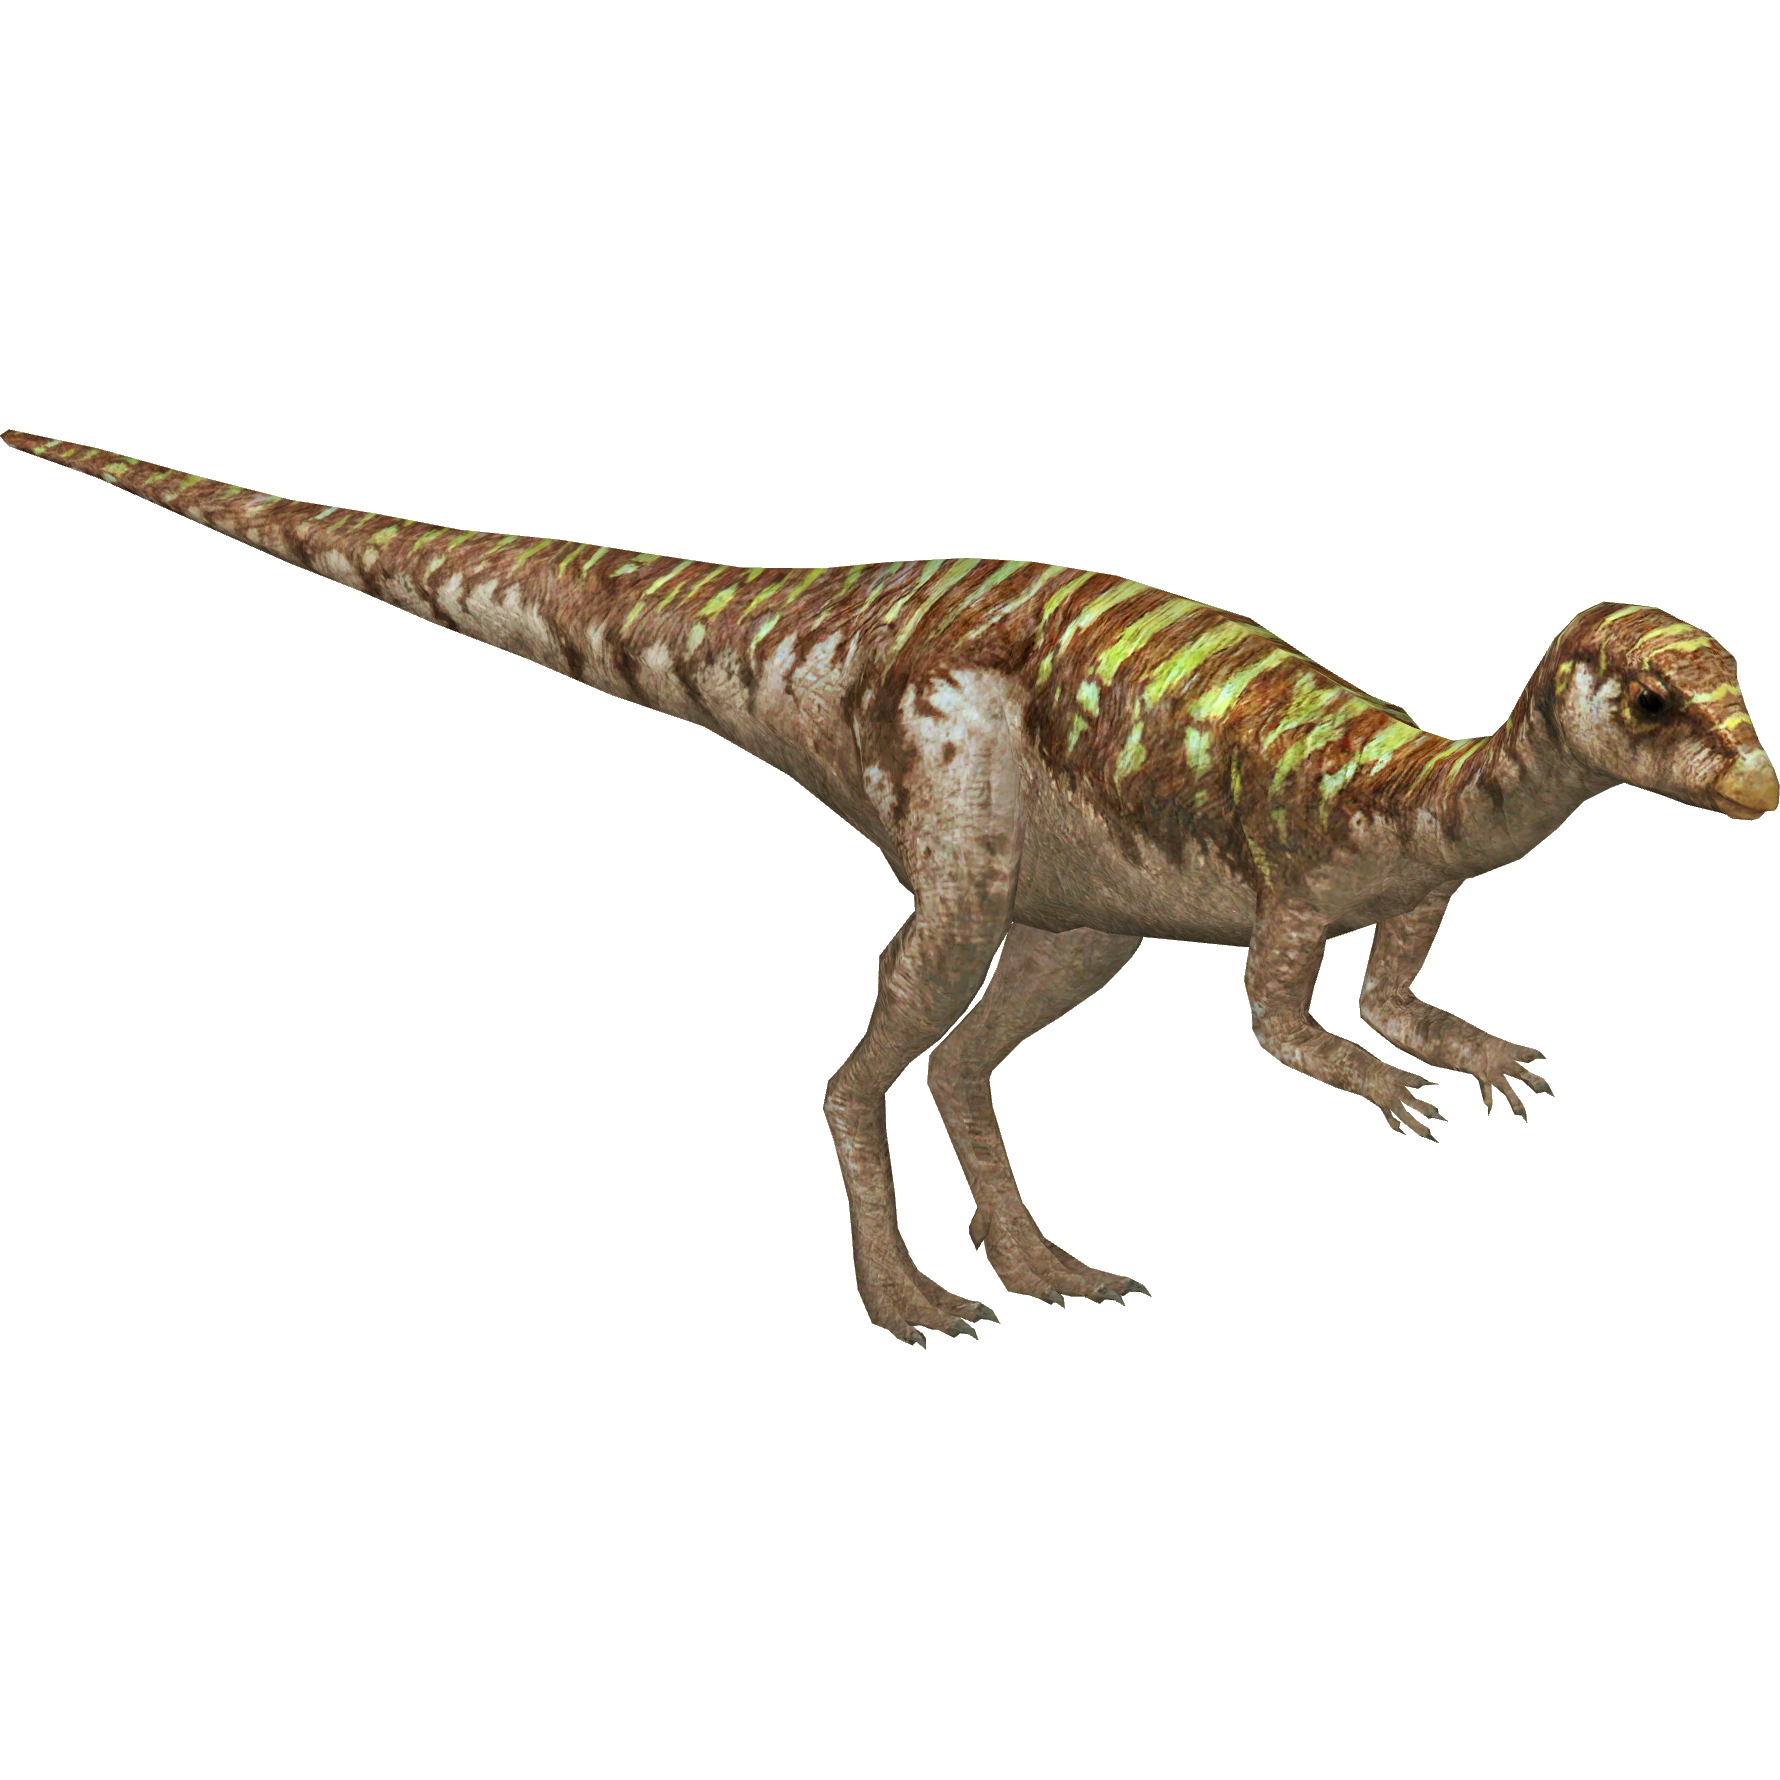 Image Leaellynasaura HENDRIXpng ZT2 Download  : latestcb20150120211842 from zt2downloadlibrary.wikia.com size 752 x 752 png 288kB